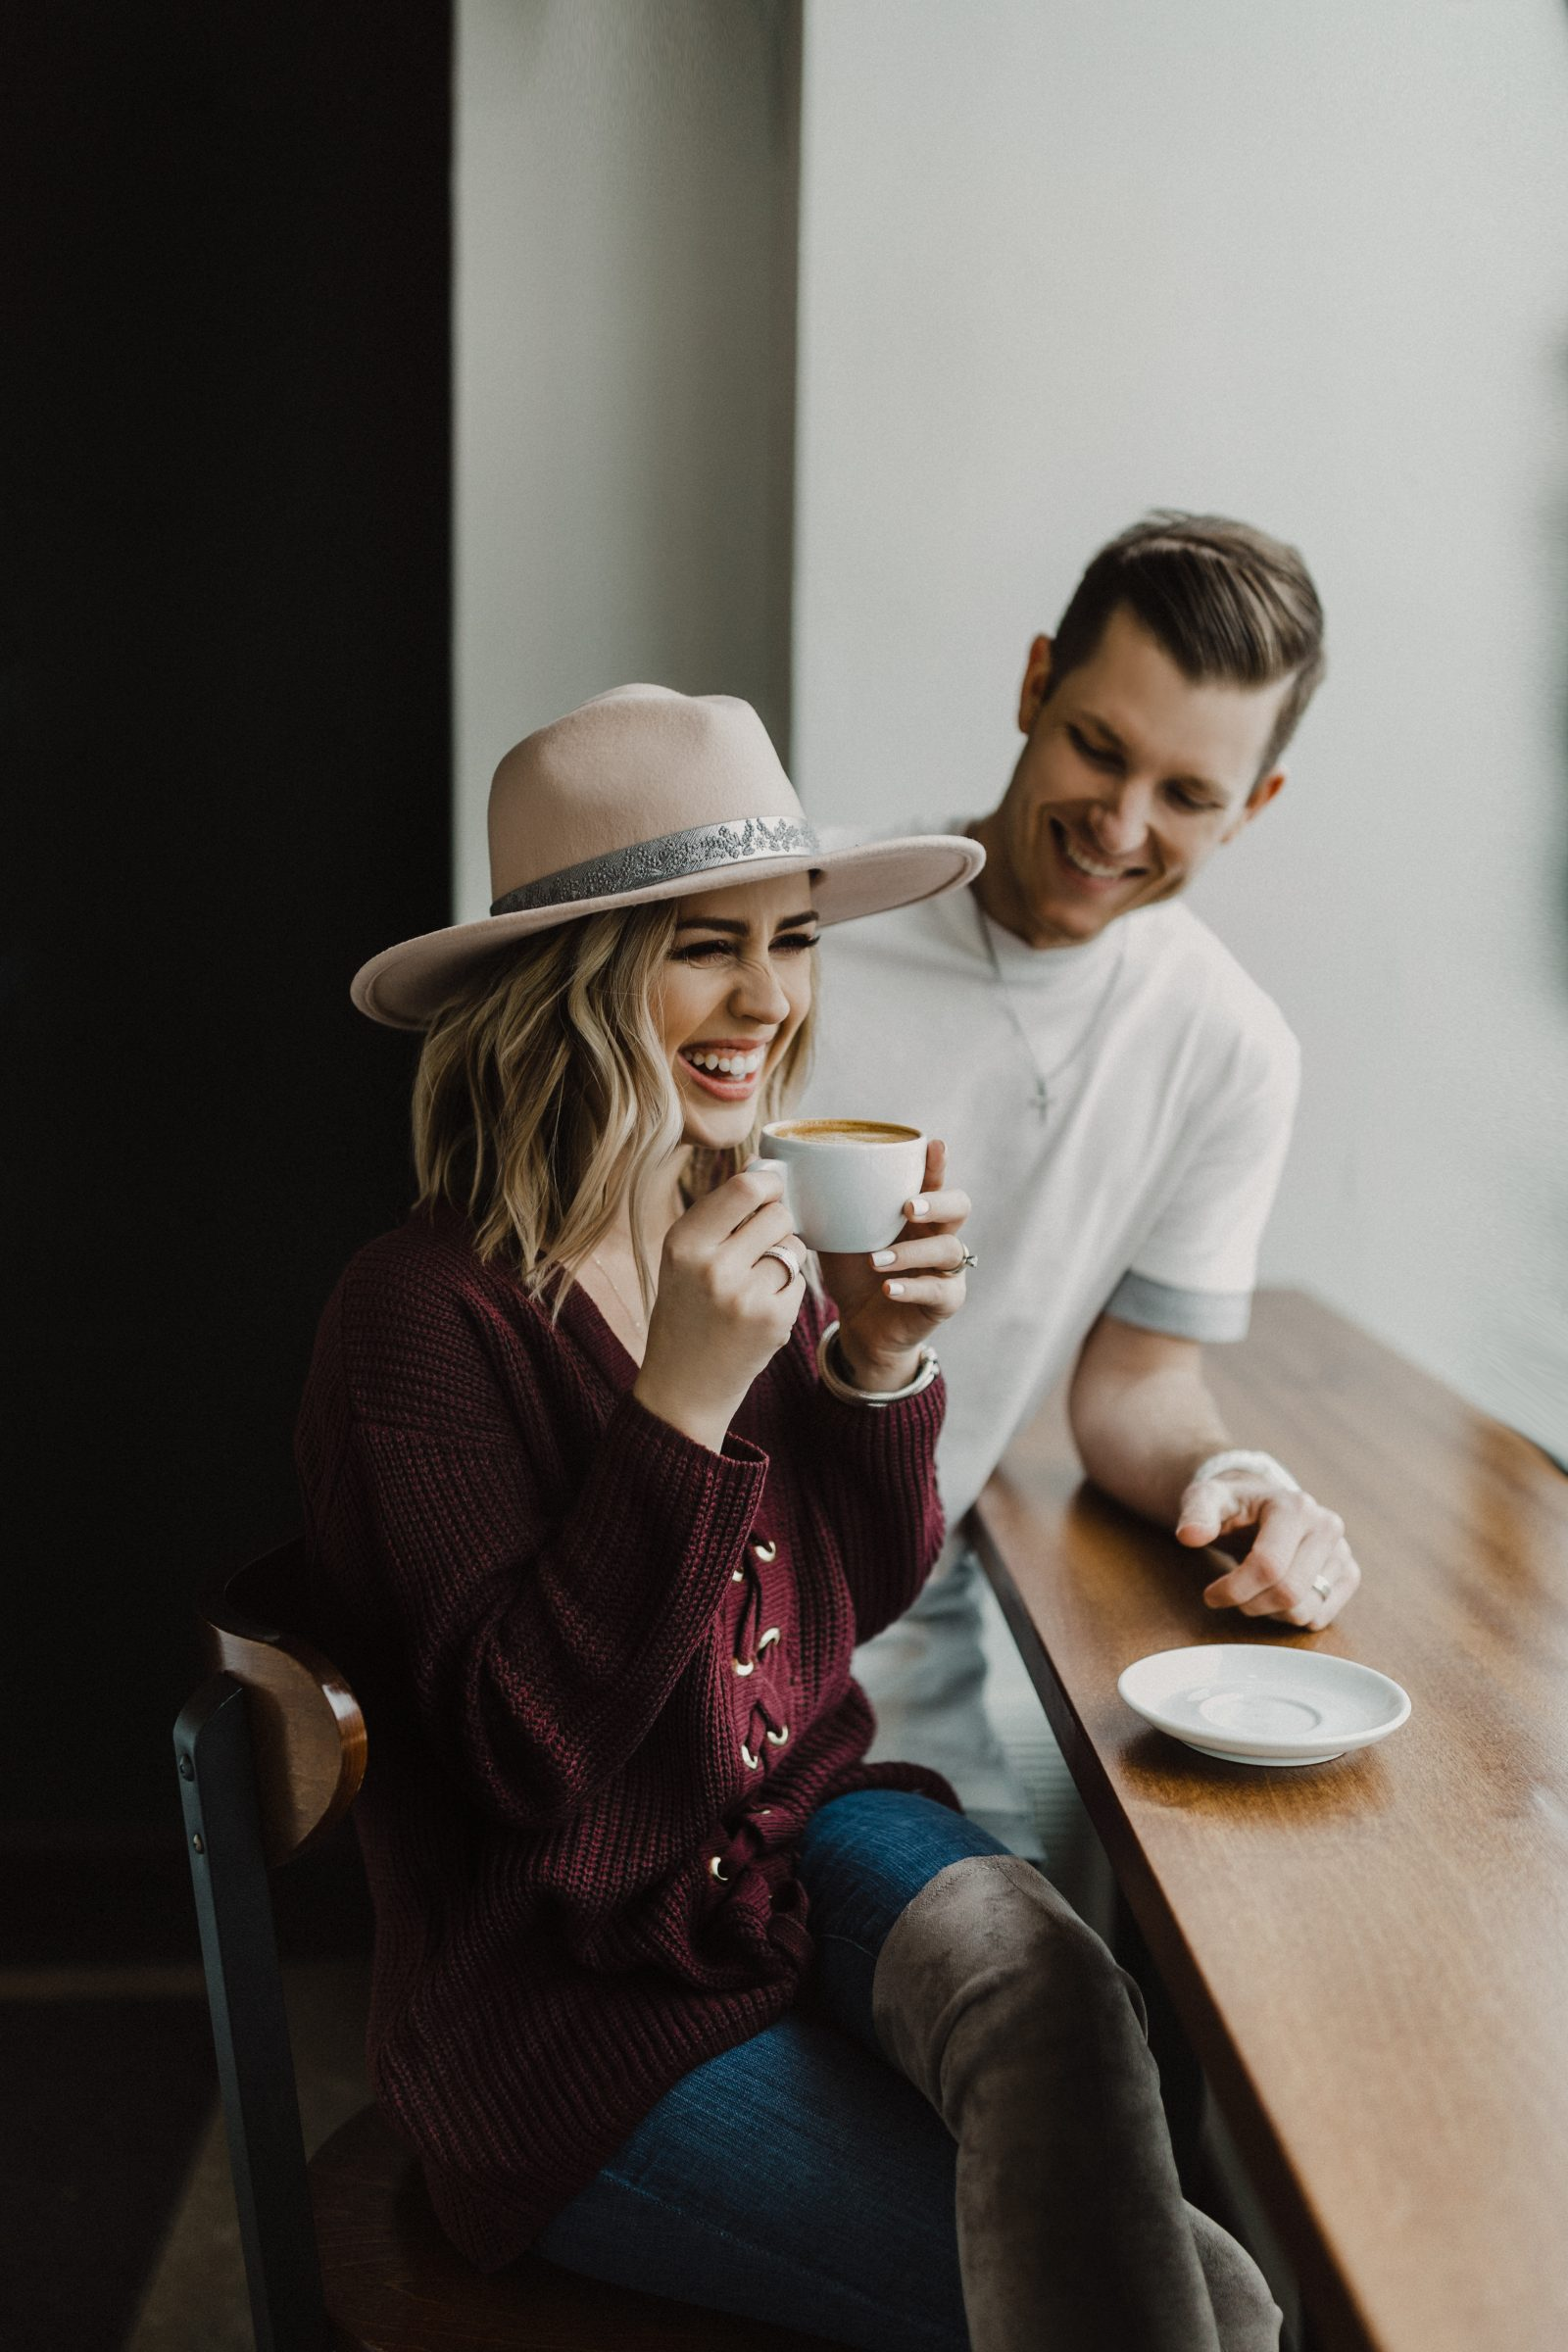 Not sure what to do for date night? Houston lifestyle blogger Elly Brown rounds up 10 at home date night ideas you'll BOTH love.